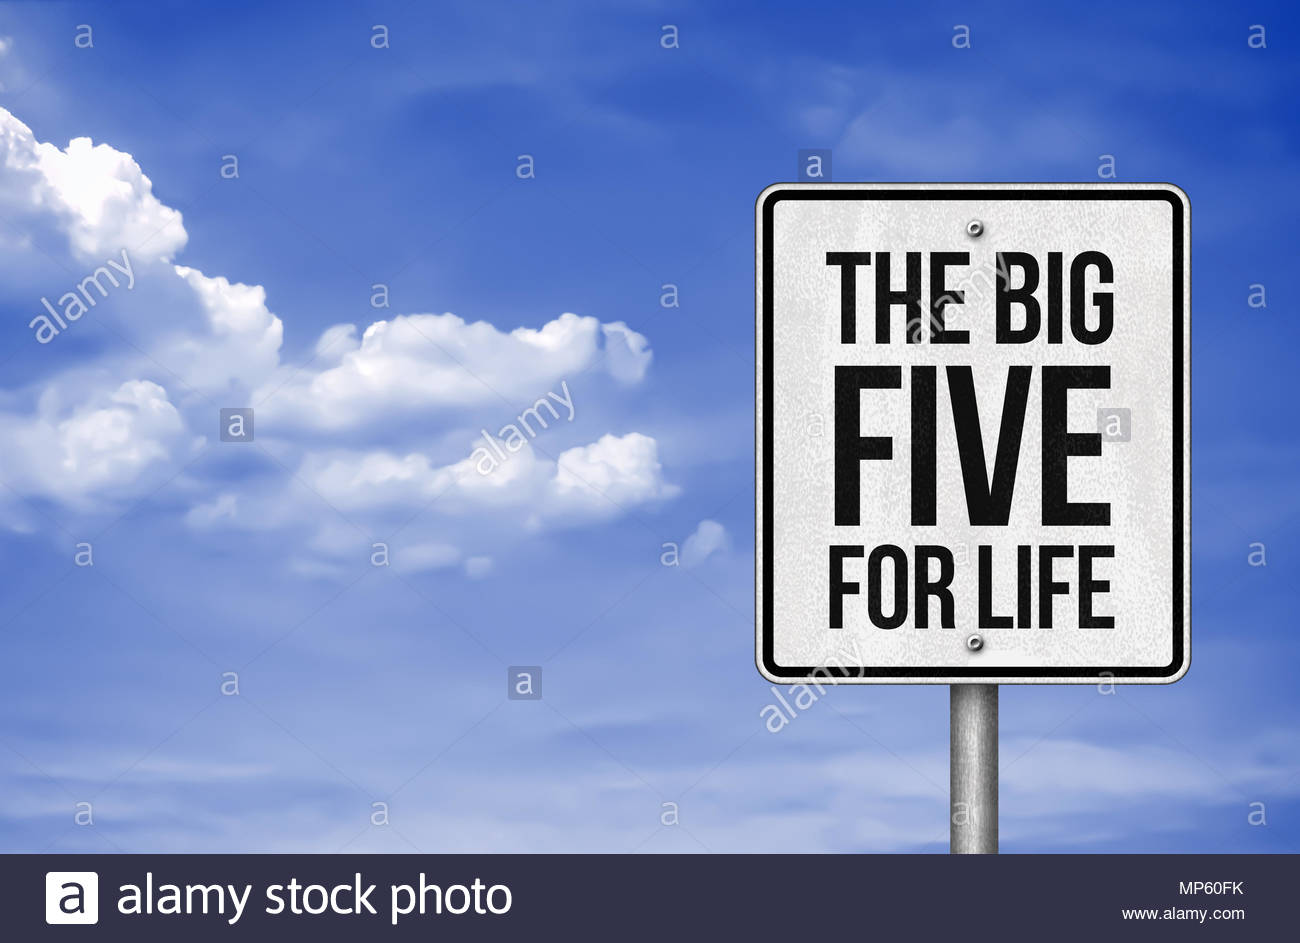 The big five for life - Stock Image